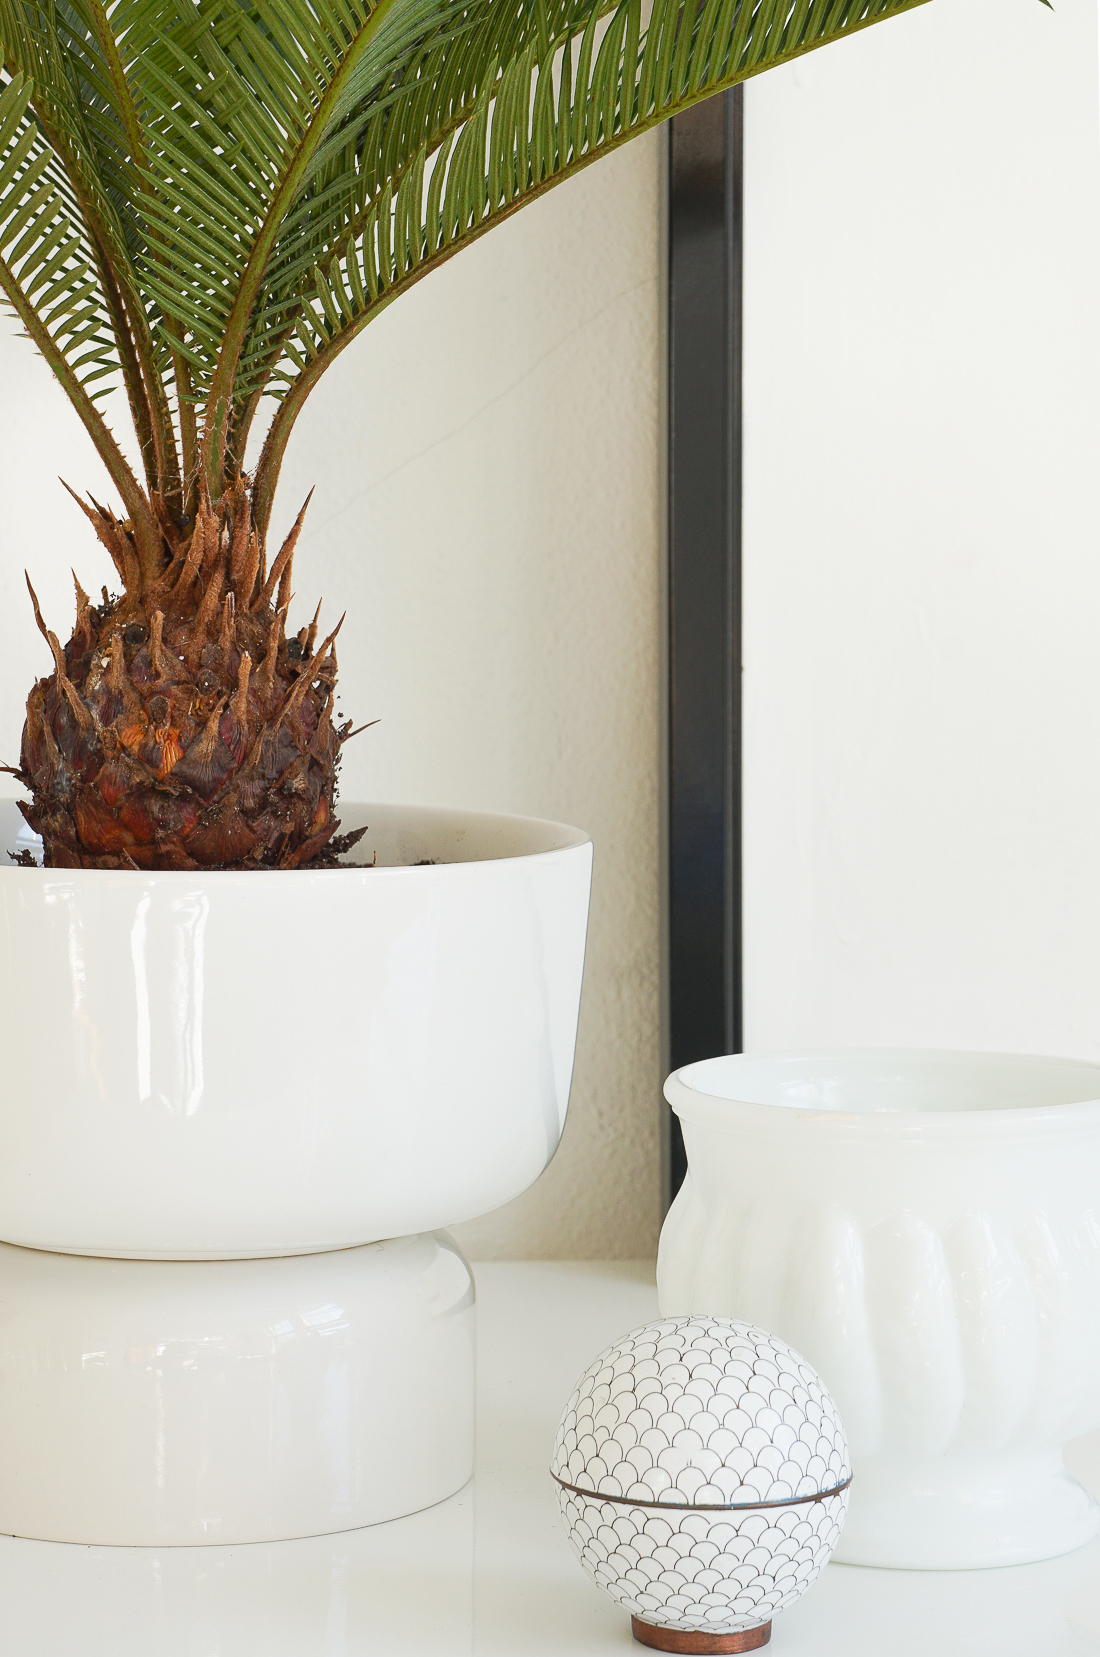 Create this mid mod planter with just two stacked Target bowls. Get all the deets here!